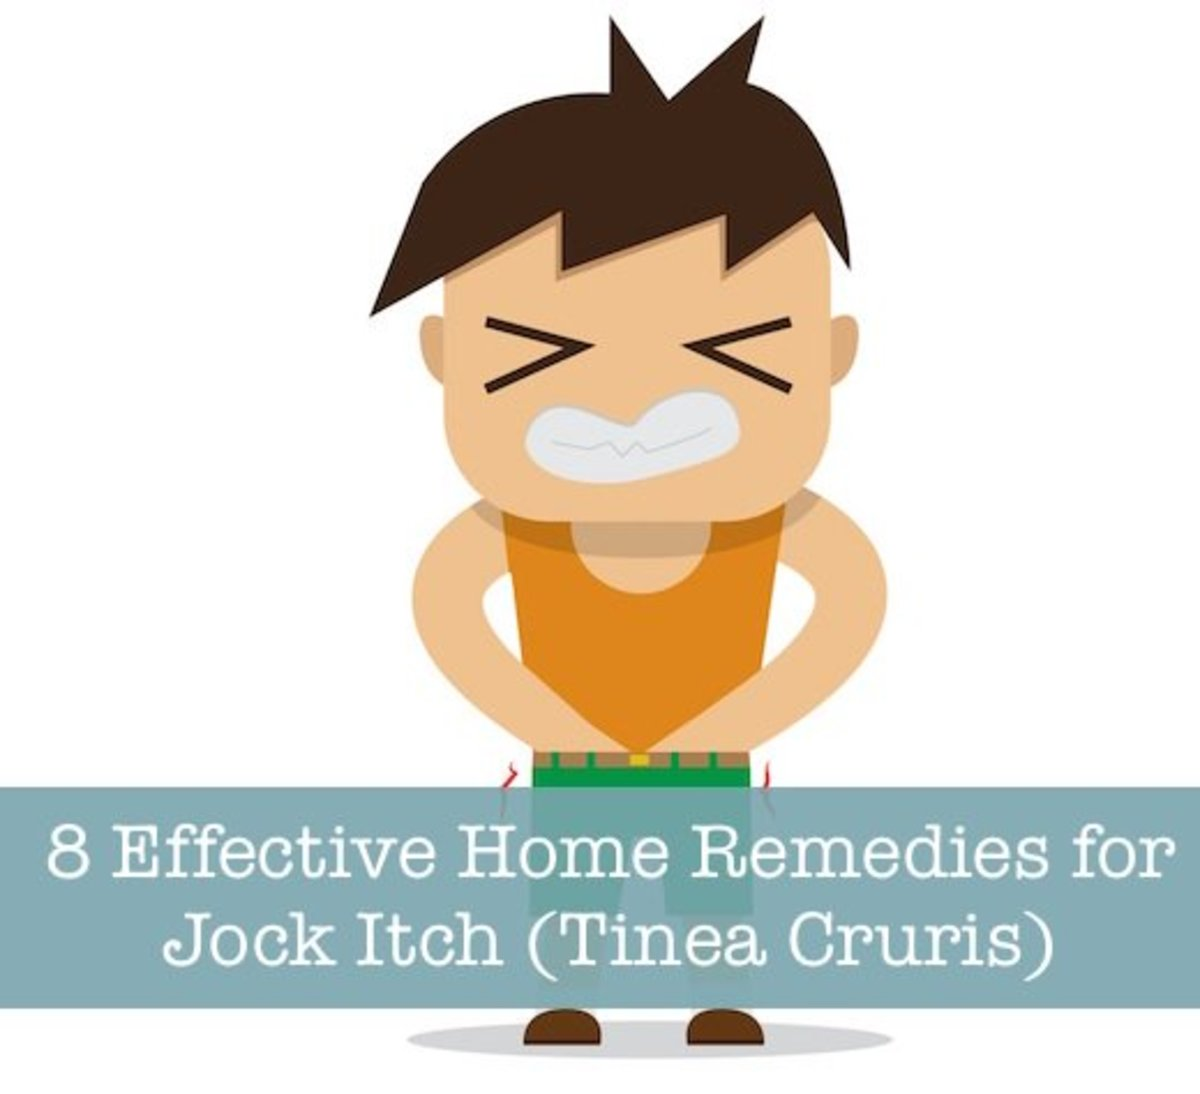 There are a number of home remedies for jock itch that can prove helpful.